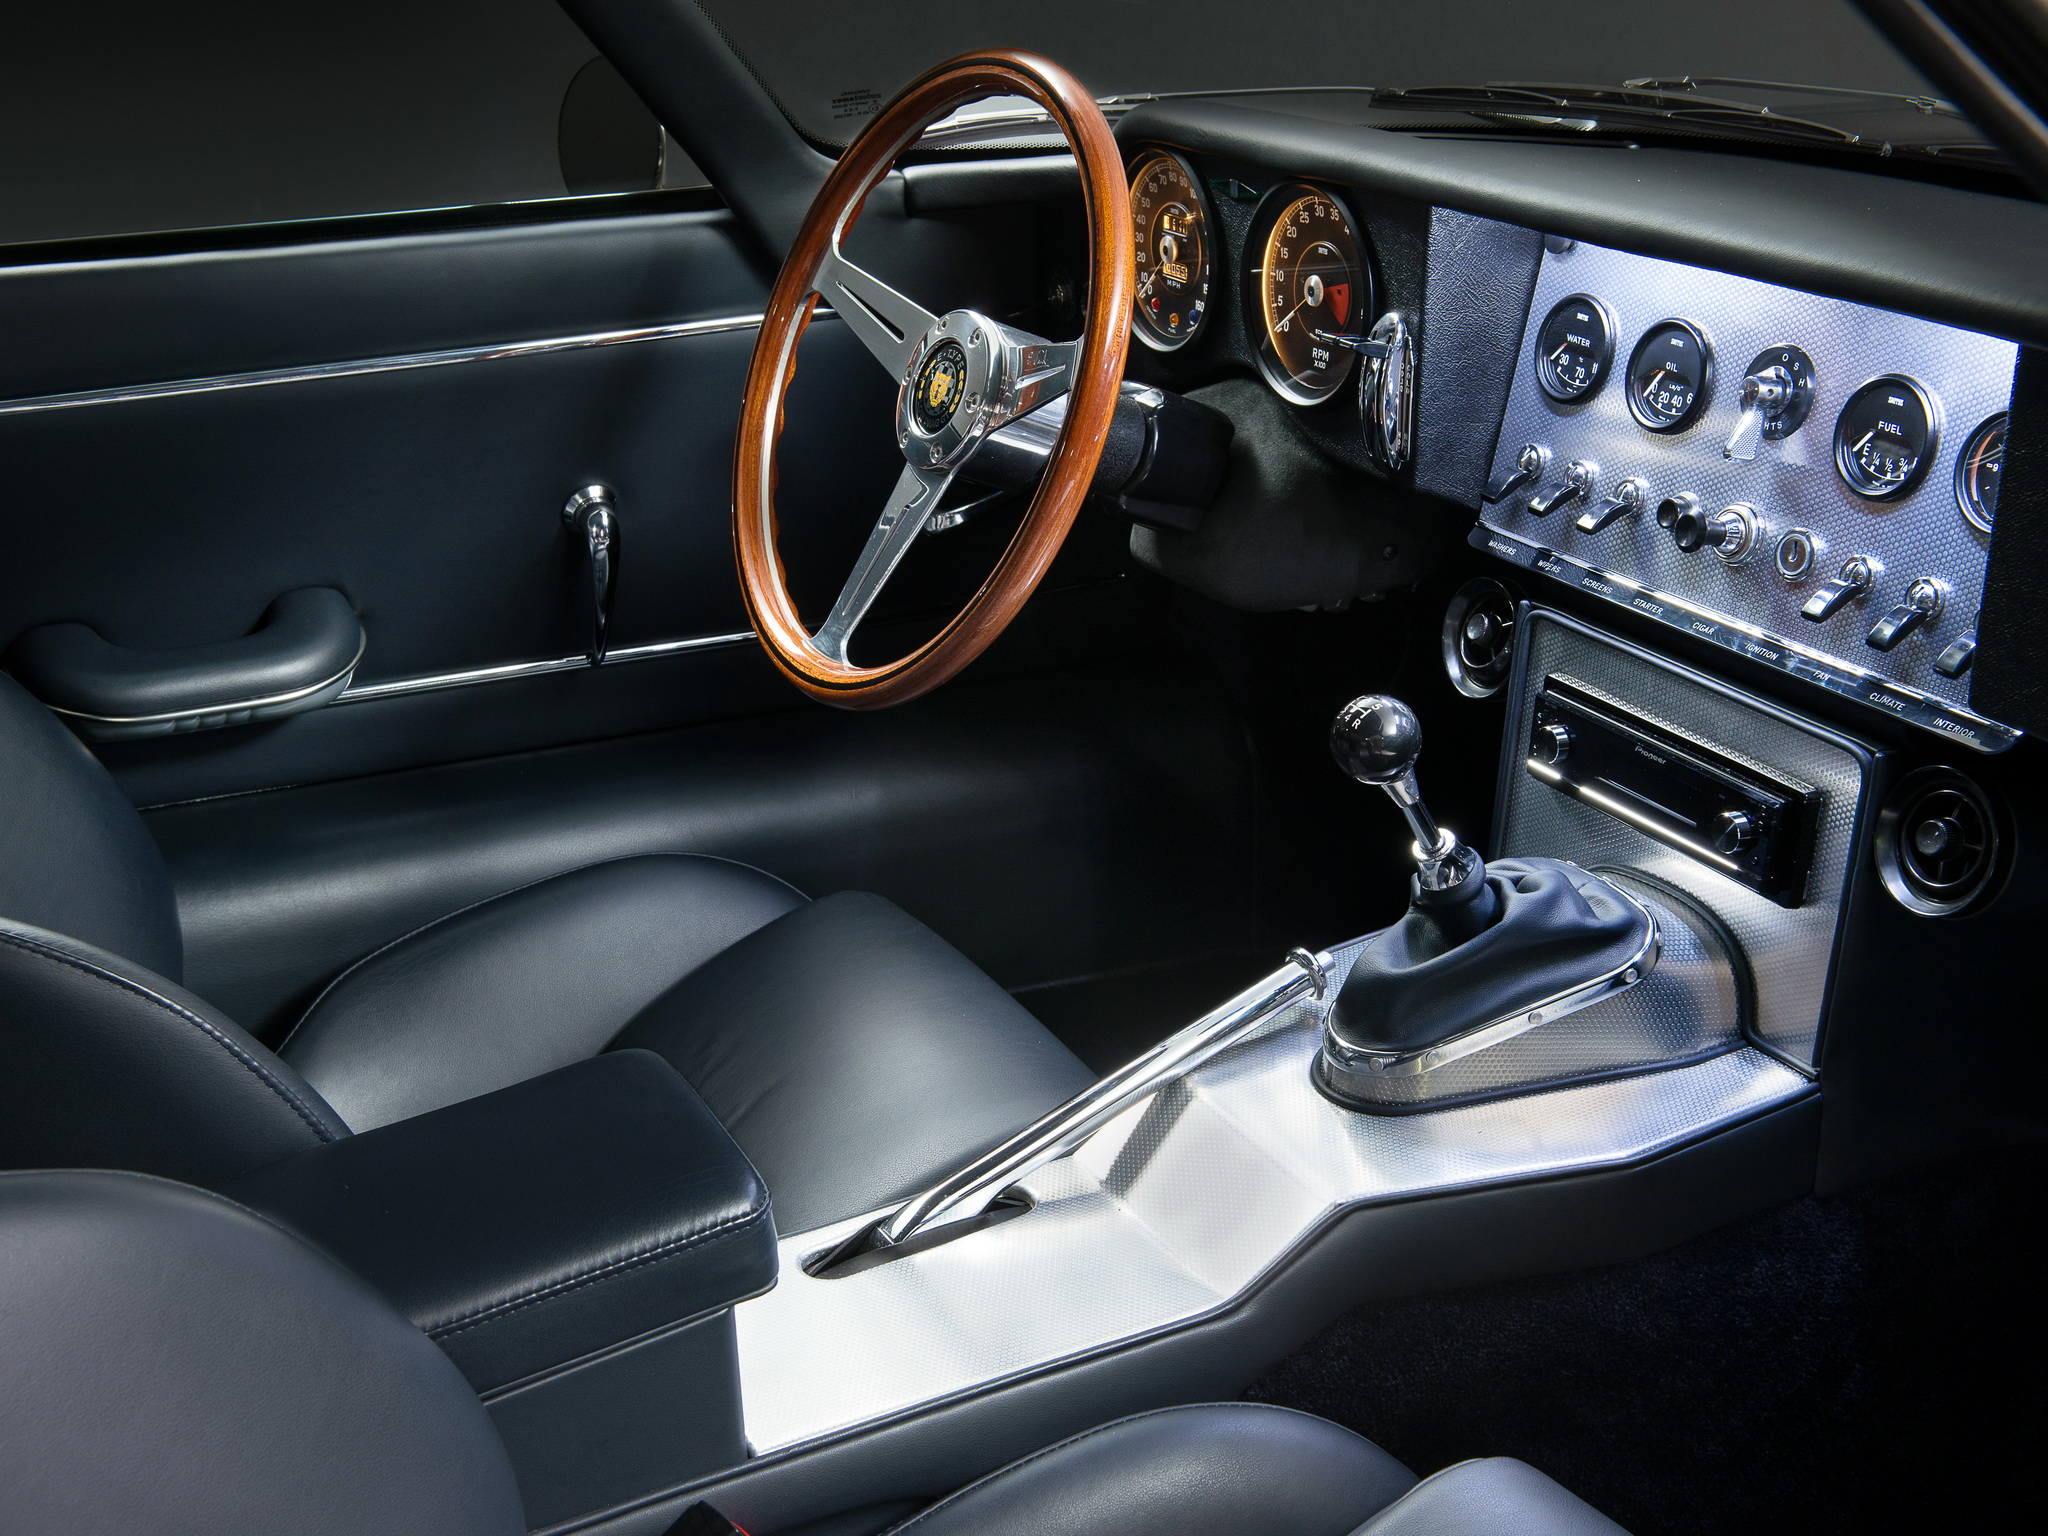 The cockpit of the Eagle; easily the equal of the original, and arguably an improvement. (Picture courtesy of wallpaperup.com)